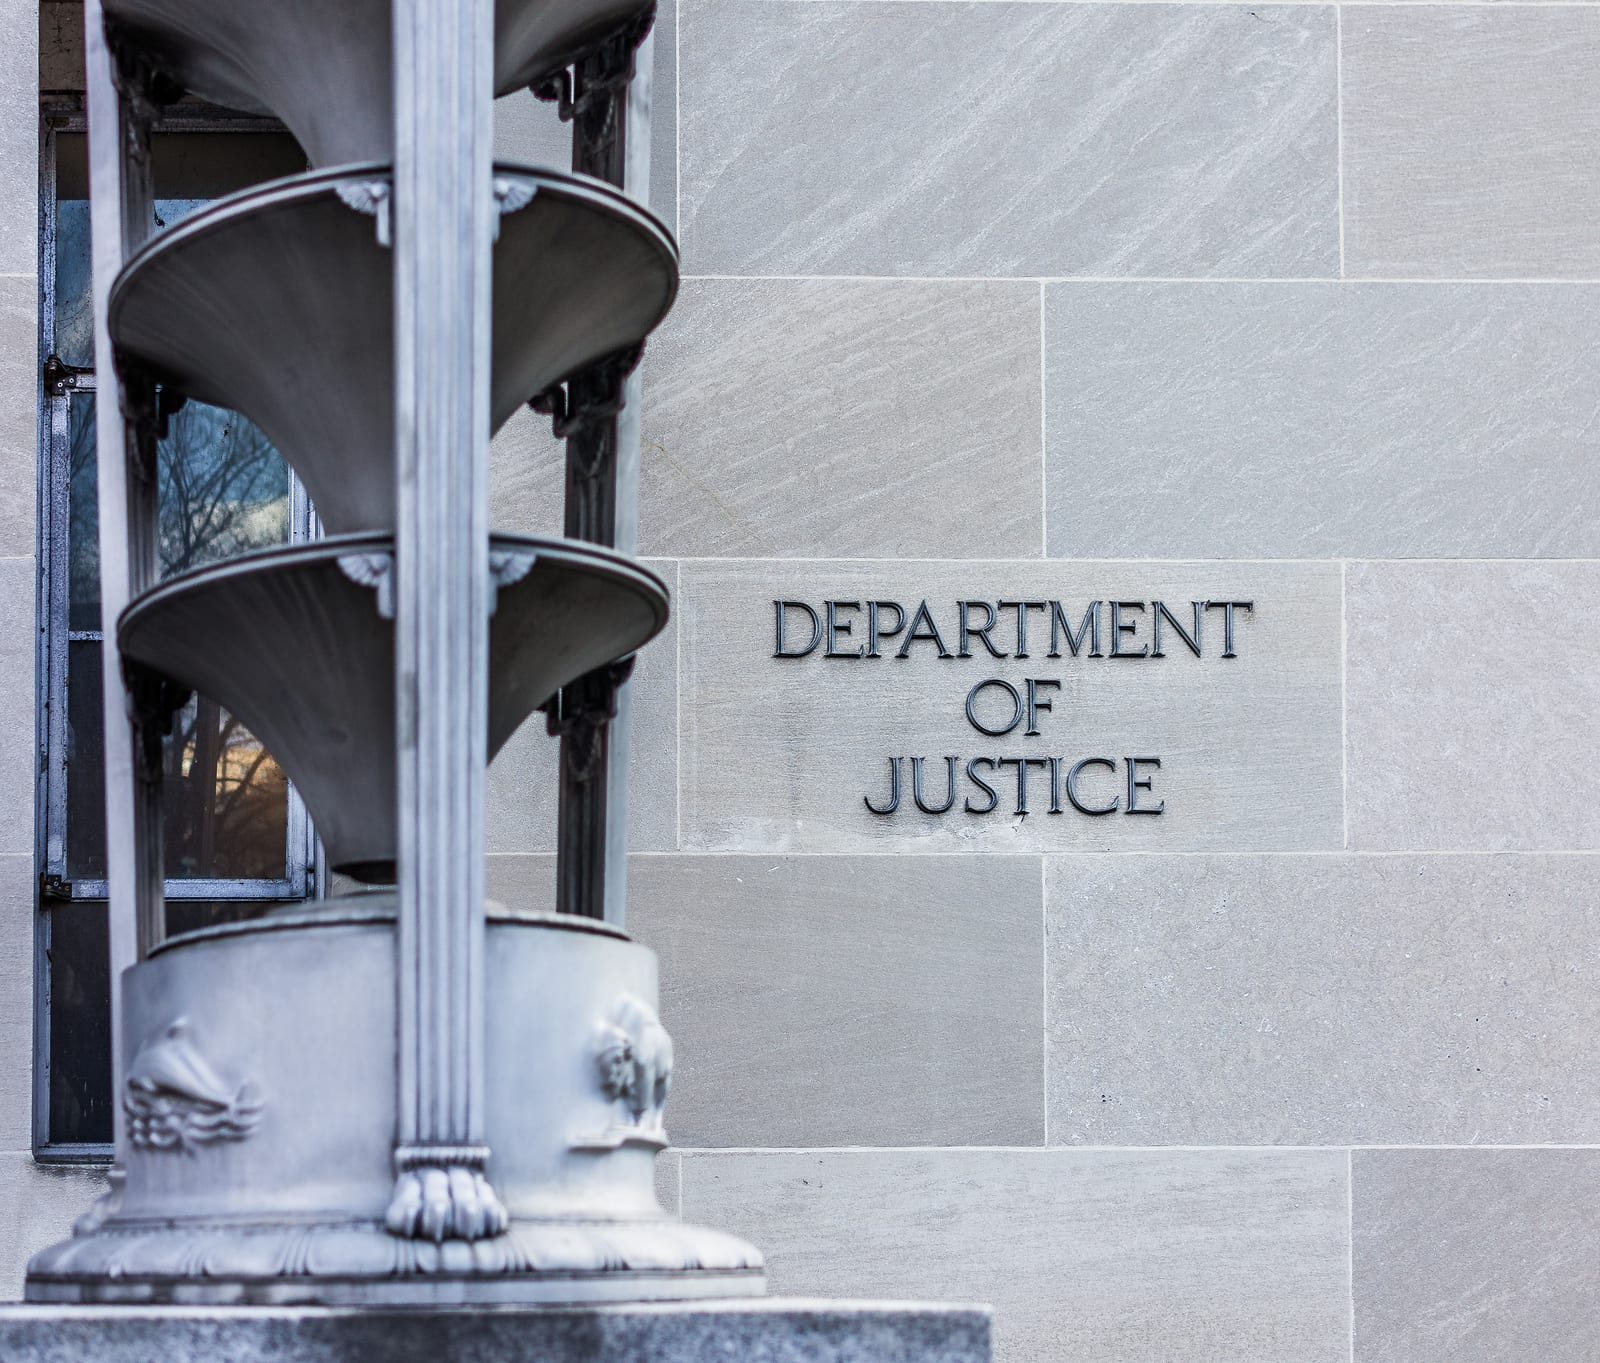 North Carolina News: RALEIGH, STEPHANIE CHAVIS, Fayetteville Social Security Employee Indicted on Wire Fraud, Aggravated Identity Theft, and Theft of Government Property Charges